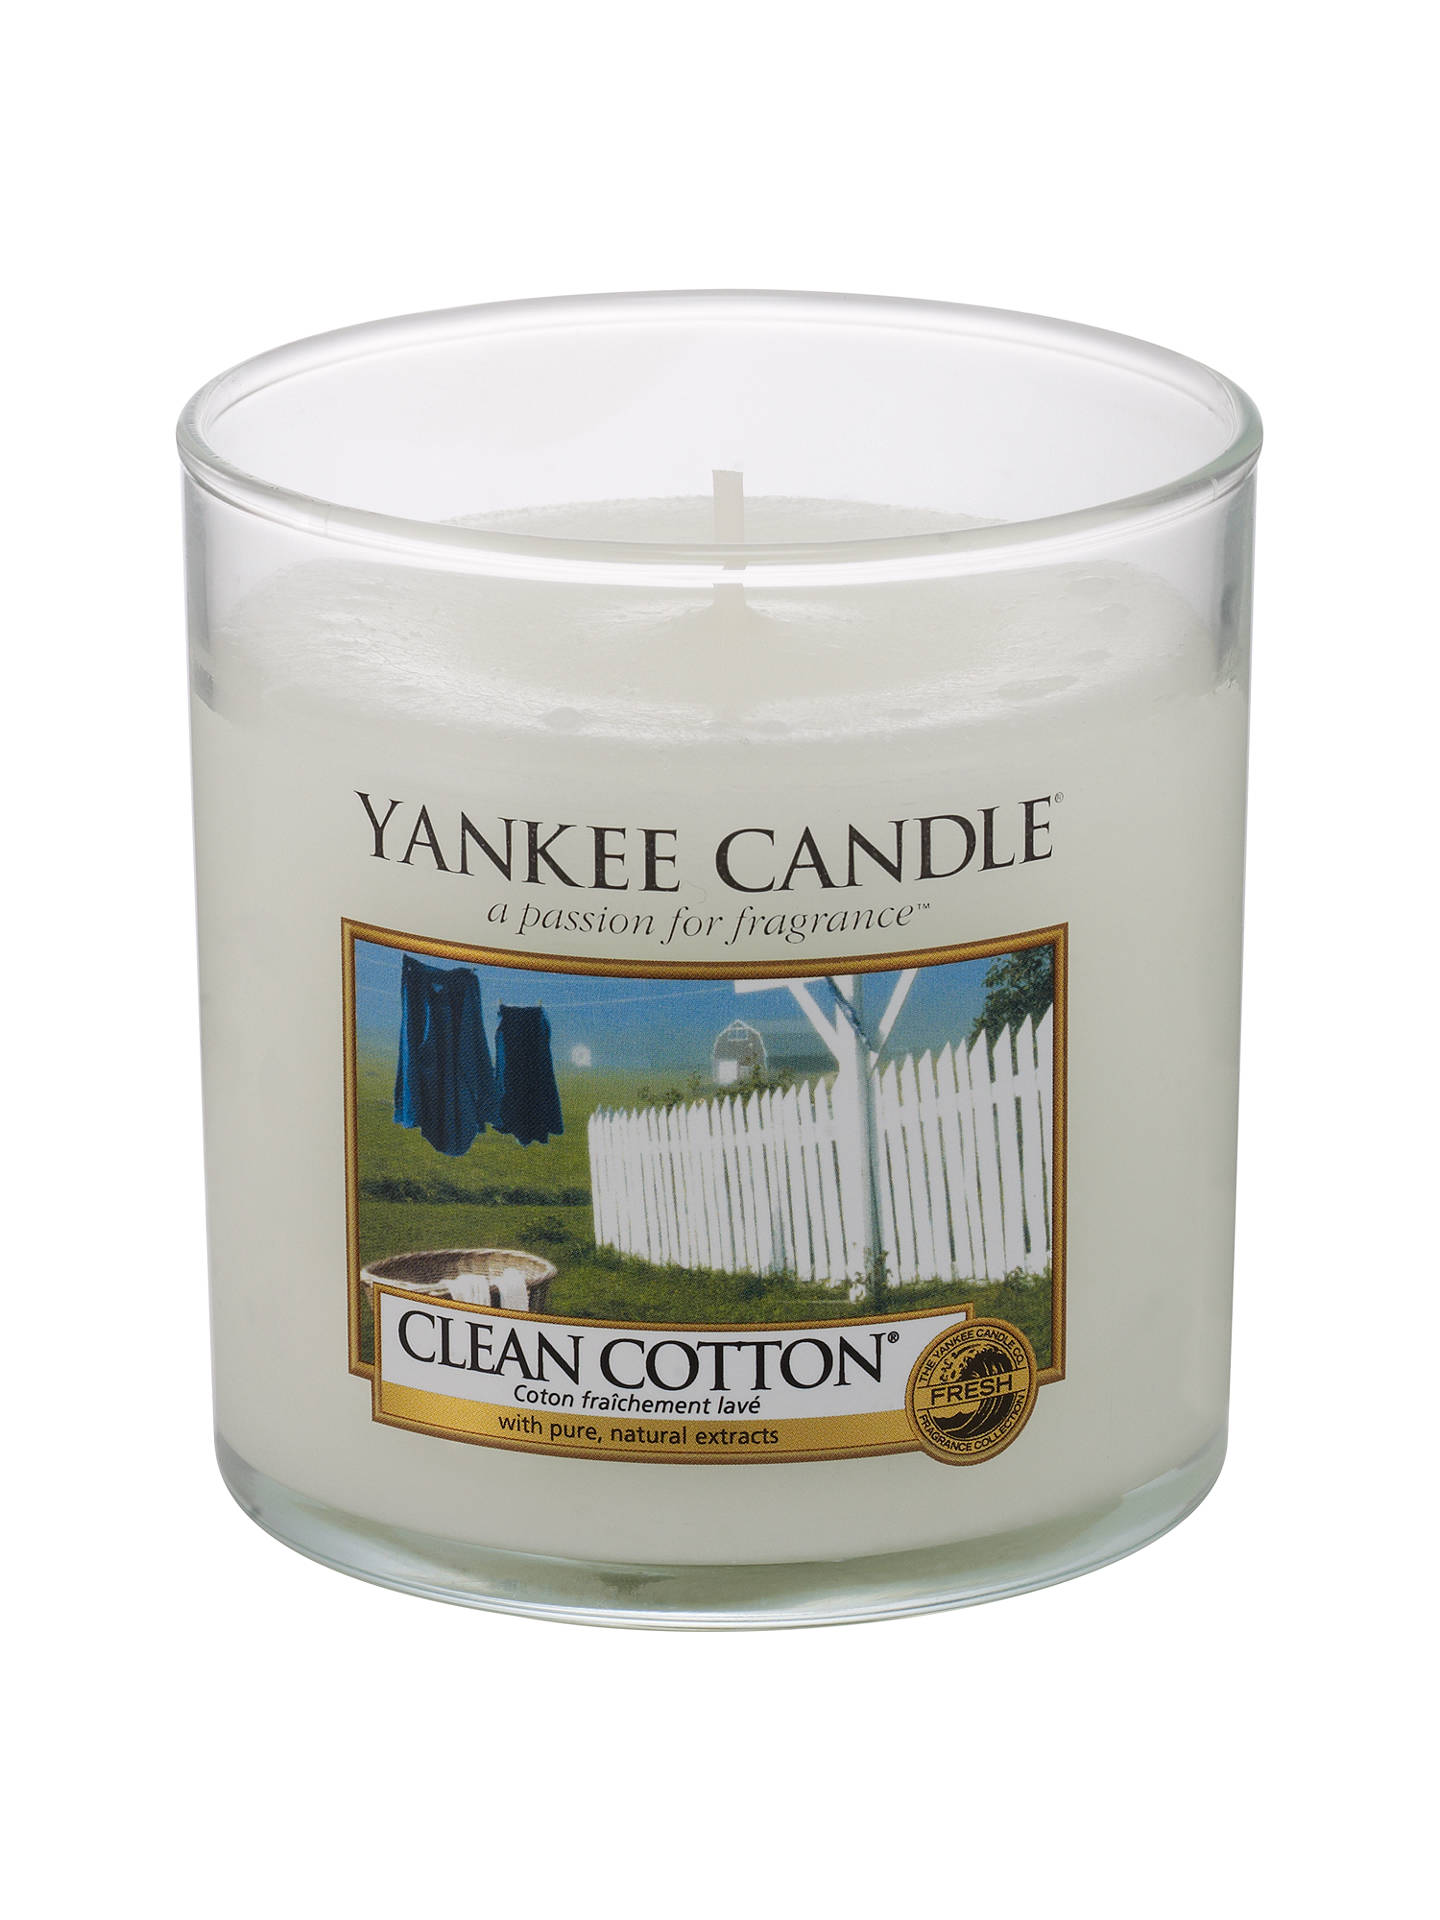 Yankee Candle Clean Cotton Scented Small At John